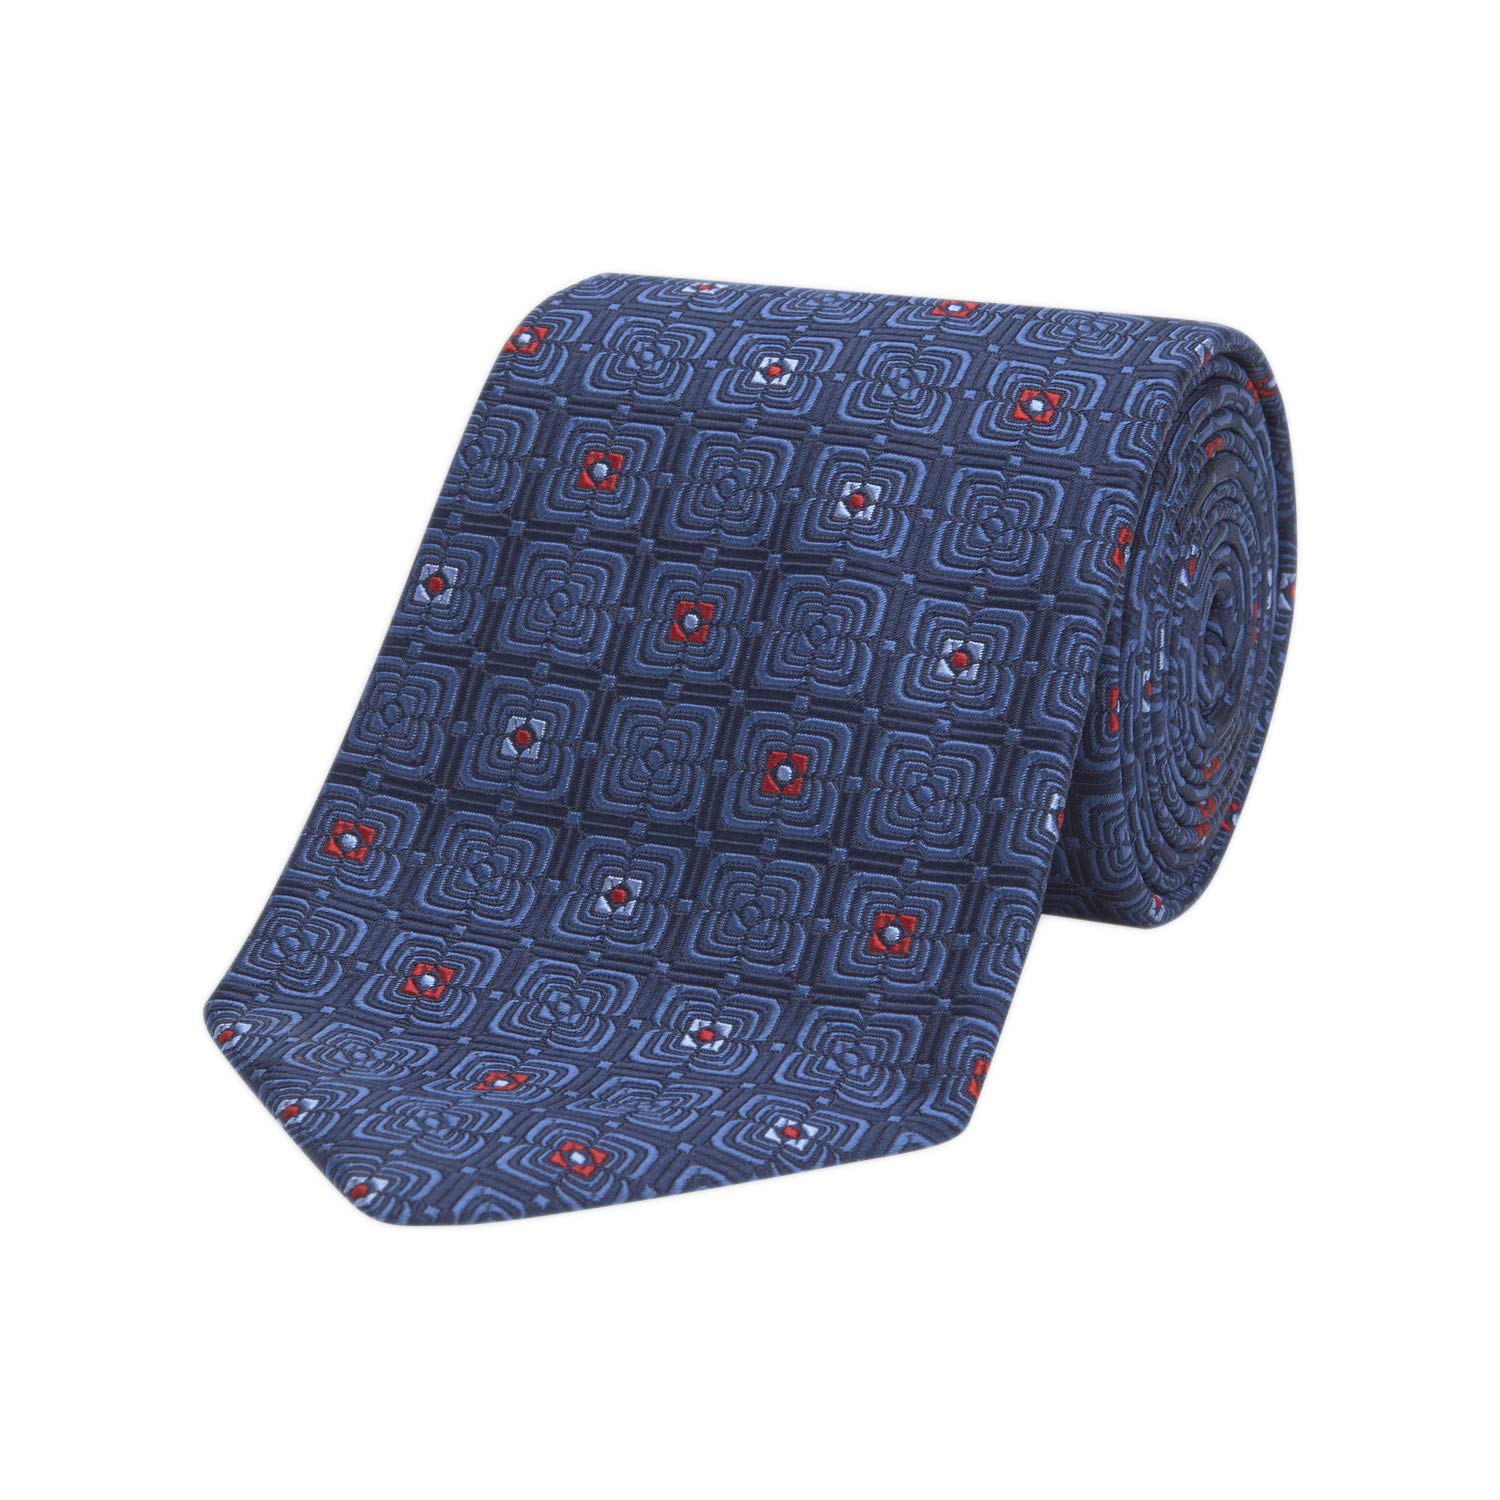 Turnbull & Asser Geometric Floral Silk Neck Tie, Navy/Red